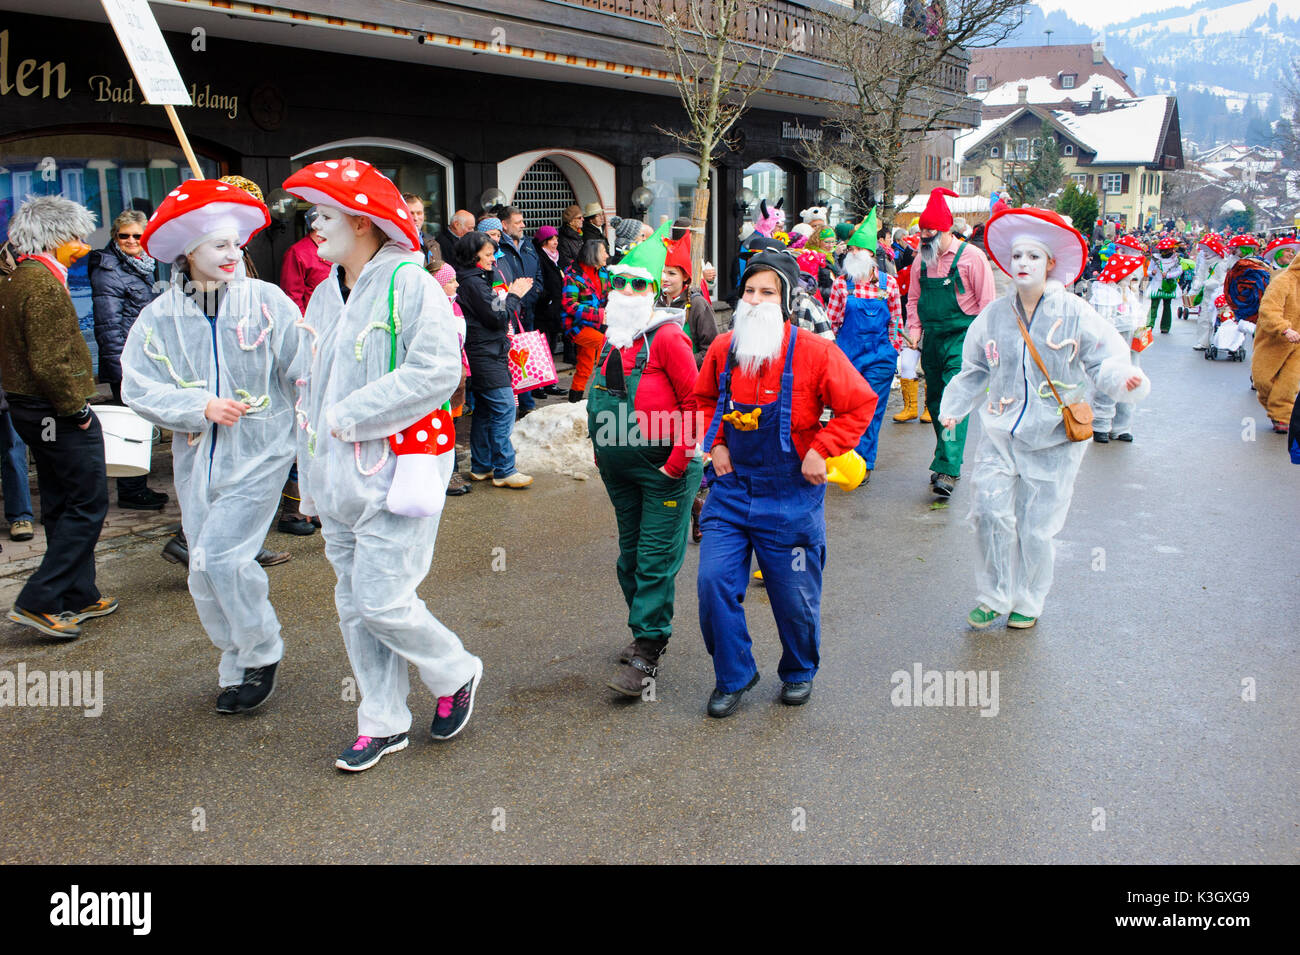 carnival procession on the high street of Bad Hindelang on carnival Sunday with many artistic masks, as for example toadstool - Stock Image